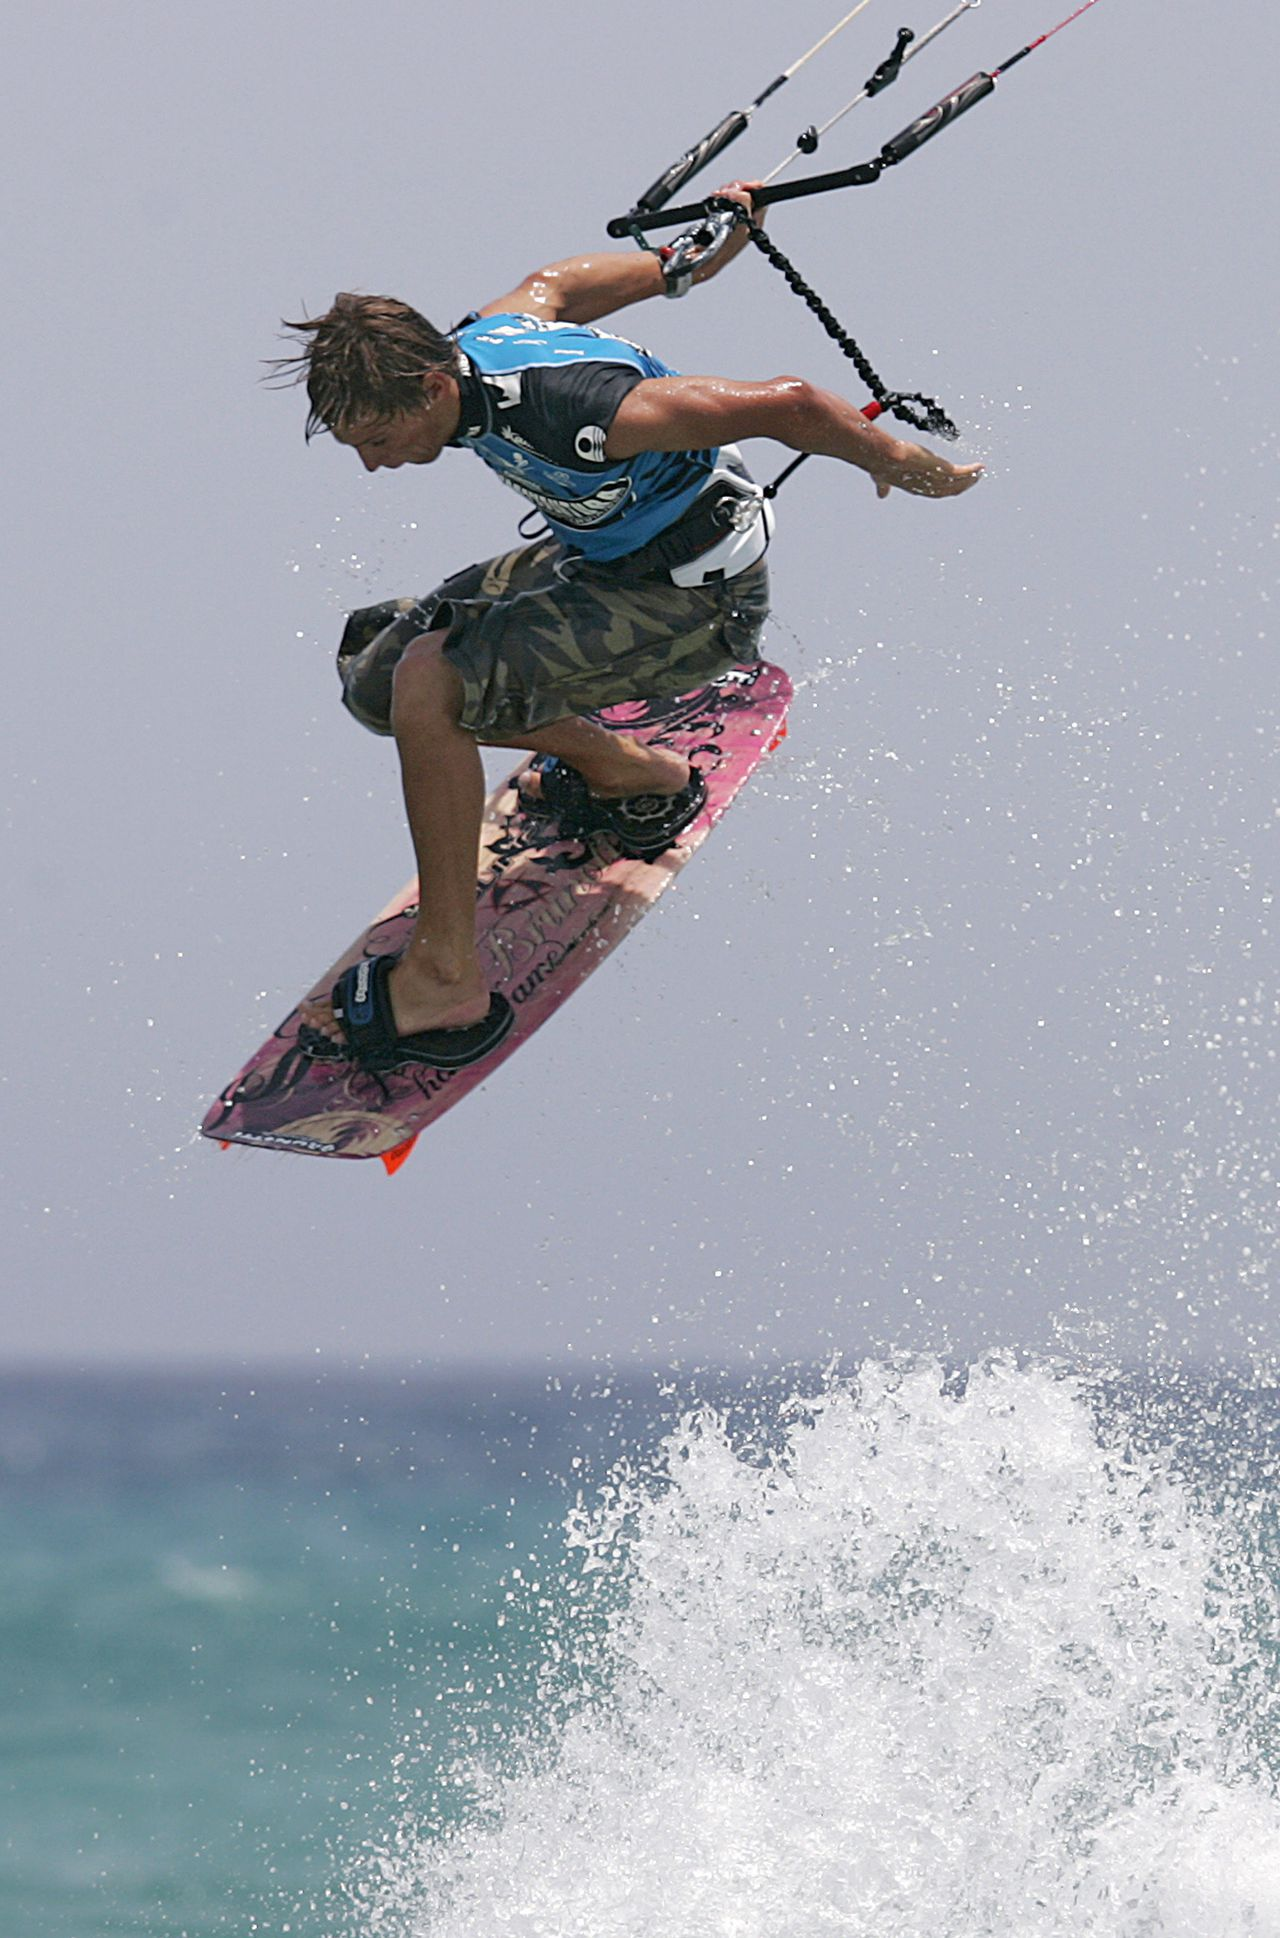 Youri Zoon of Netherlands goes airborne while competing in the freestyle event of the PKRA Kiteboarding Grand Prix in the Spain's Canary Island of Fuerteventura, August 3, 2006. REUTERS/Juan Medina (SPAIN)